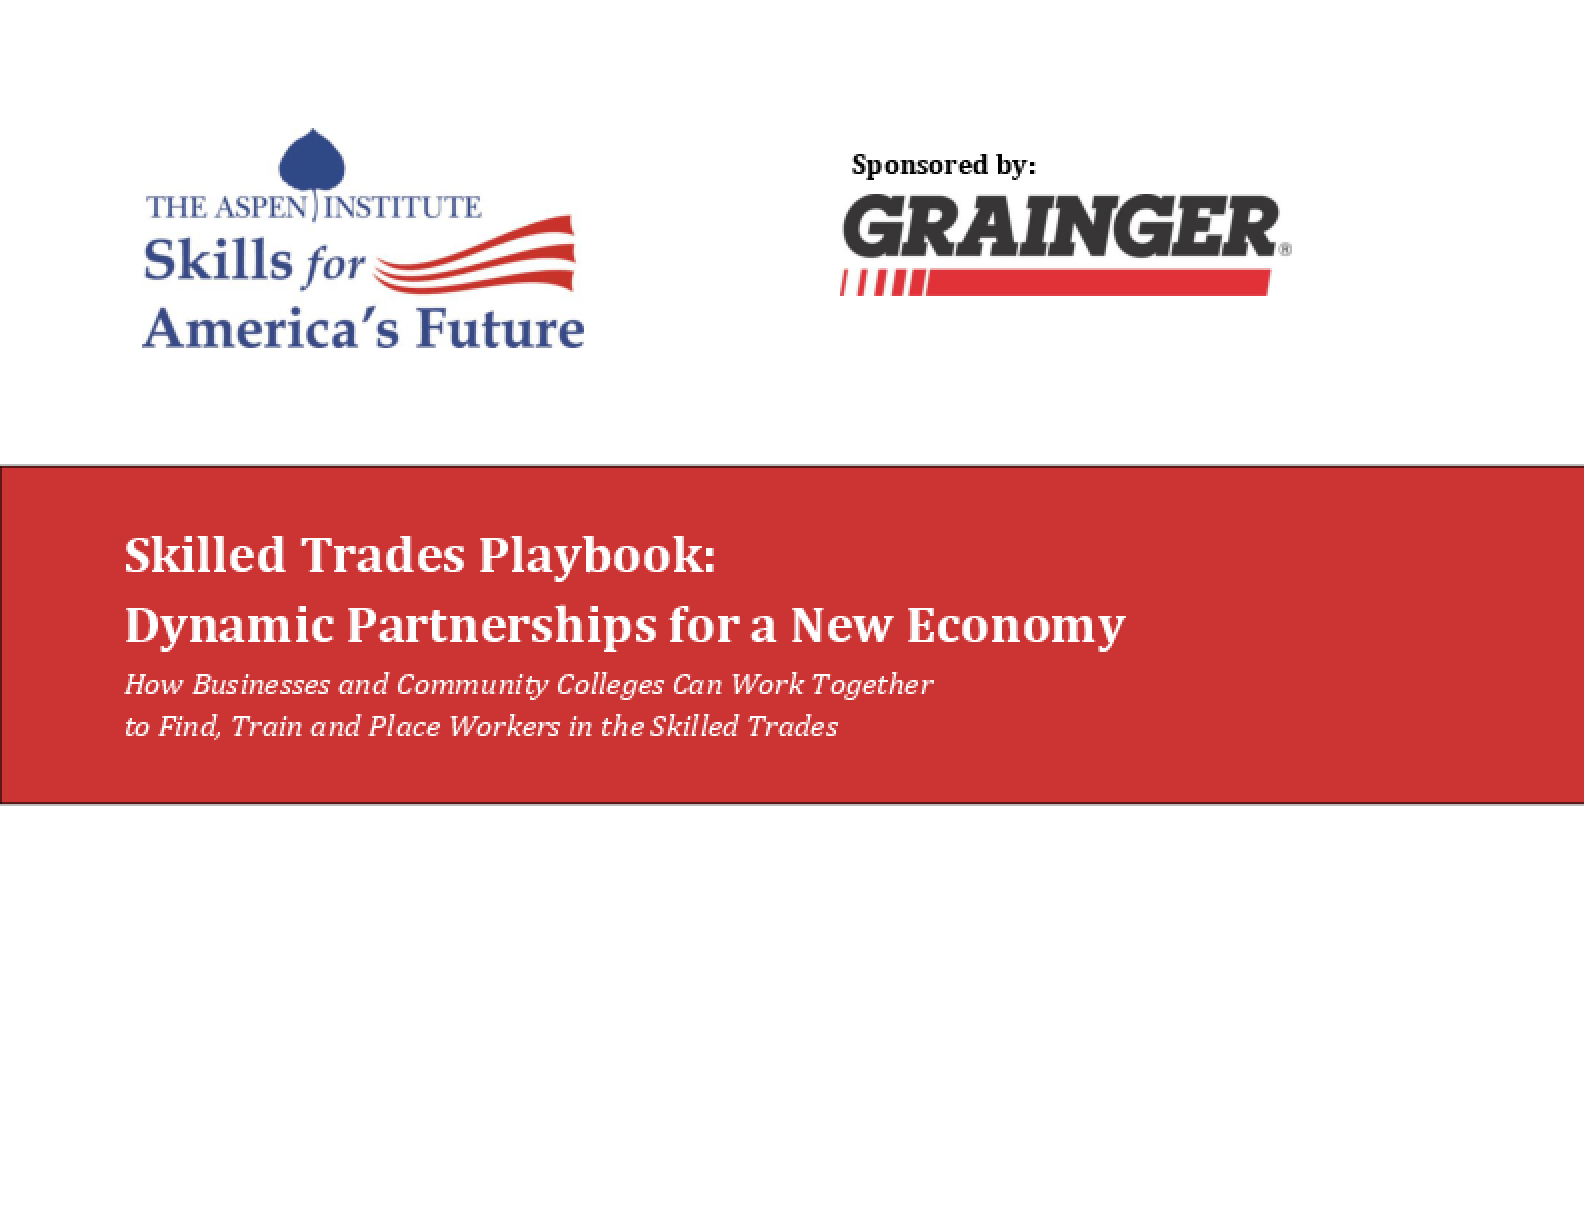 Skilled Trades Playbook: Dynamic Partnerships for a New Economy